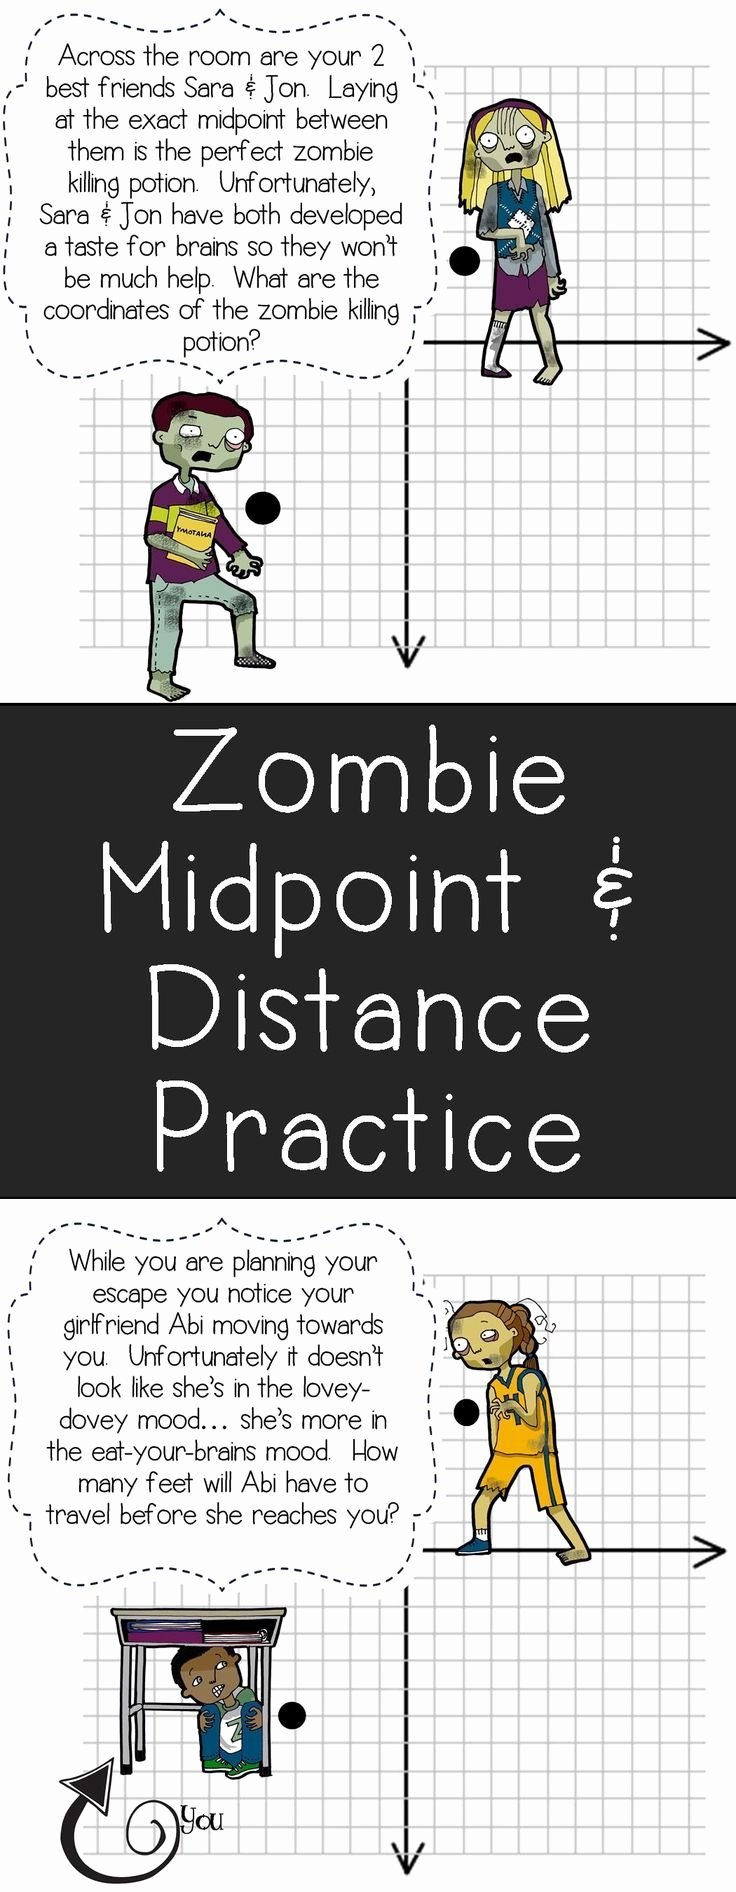 Distance and Midpoint Worksheet Answers Luxury My Students Will Love This Zombie themed Midpoint